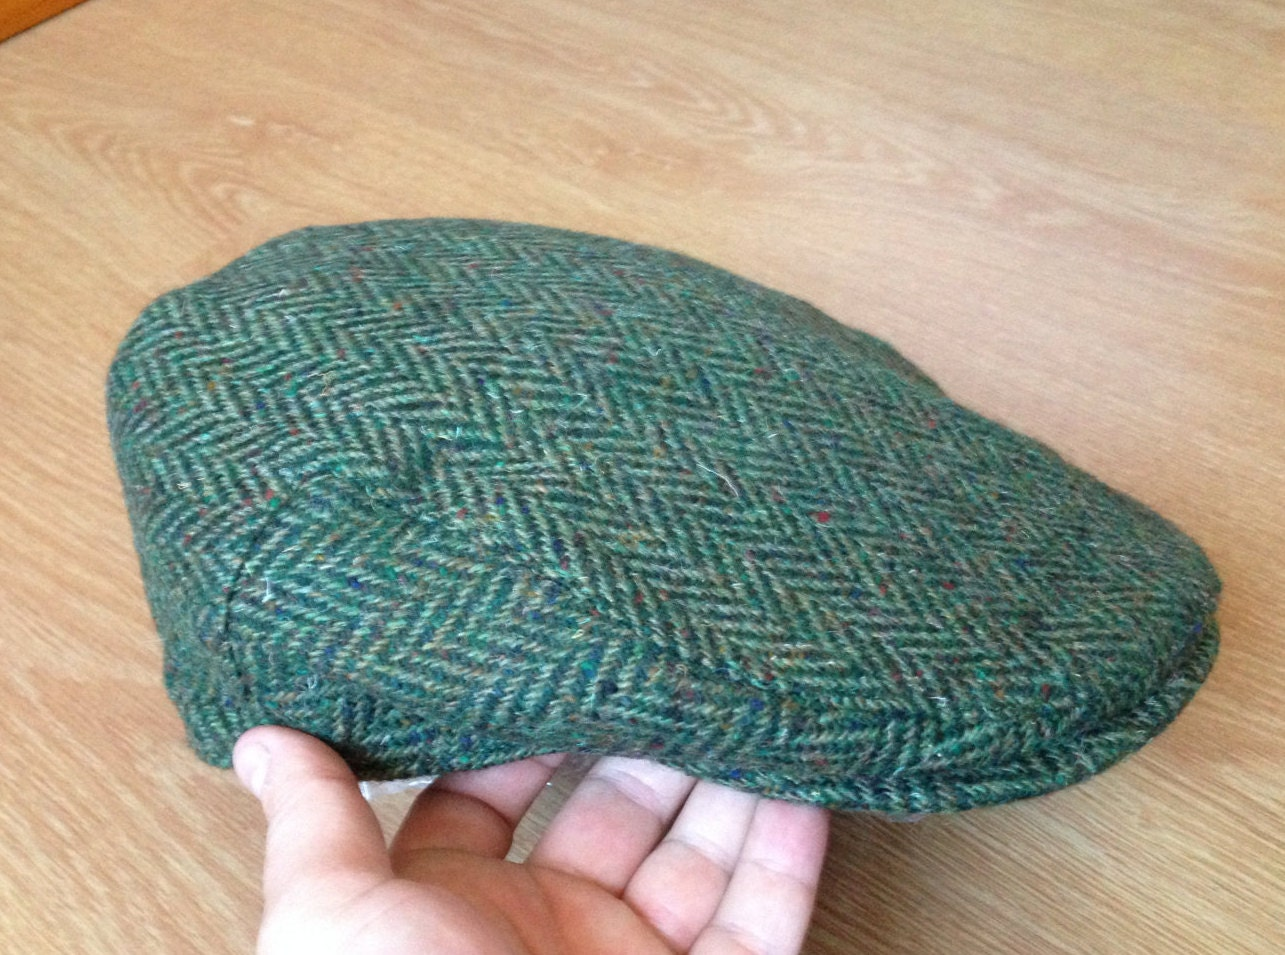 Authentic Irish Tweed Flat Cap - Green Herringbone - 100% Donegal ... a5beb520d620